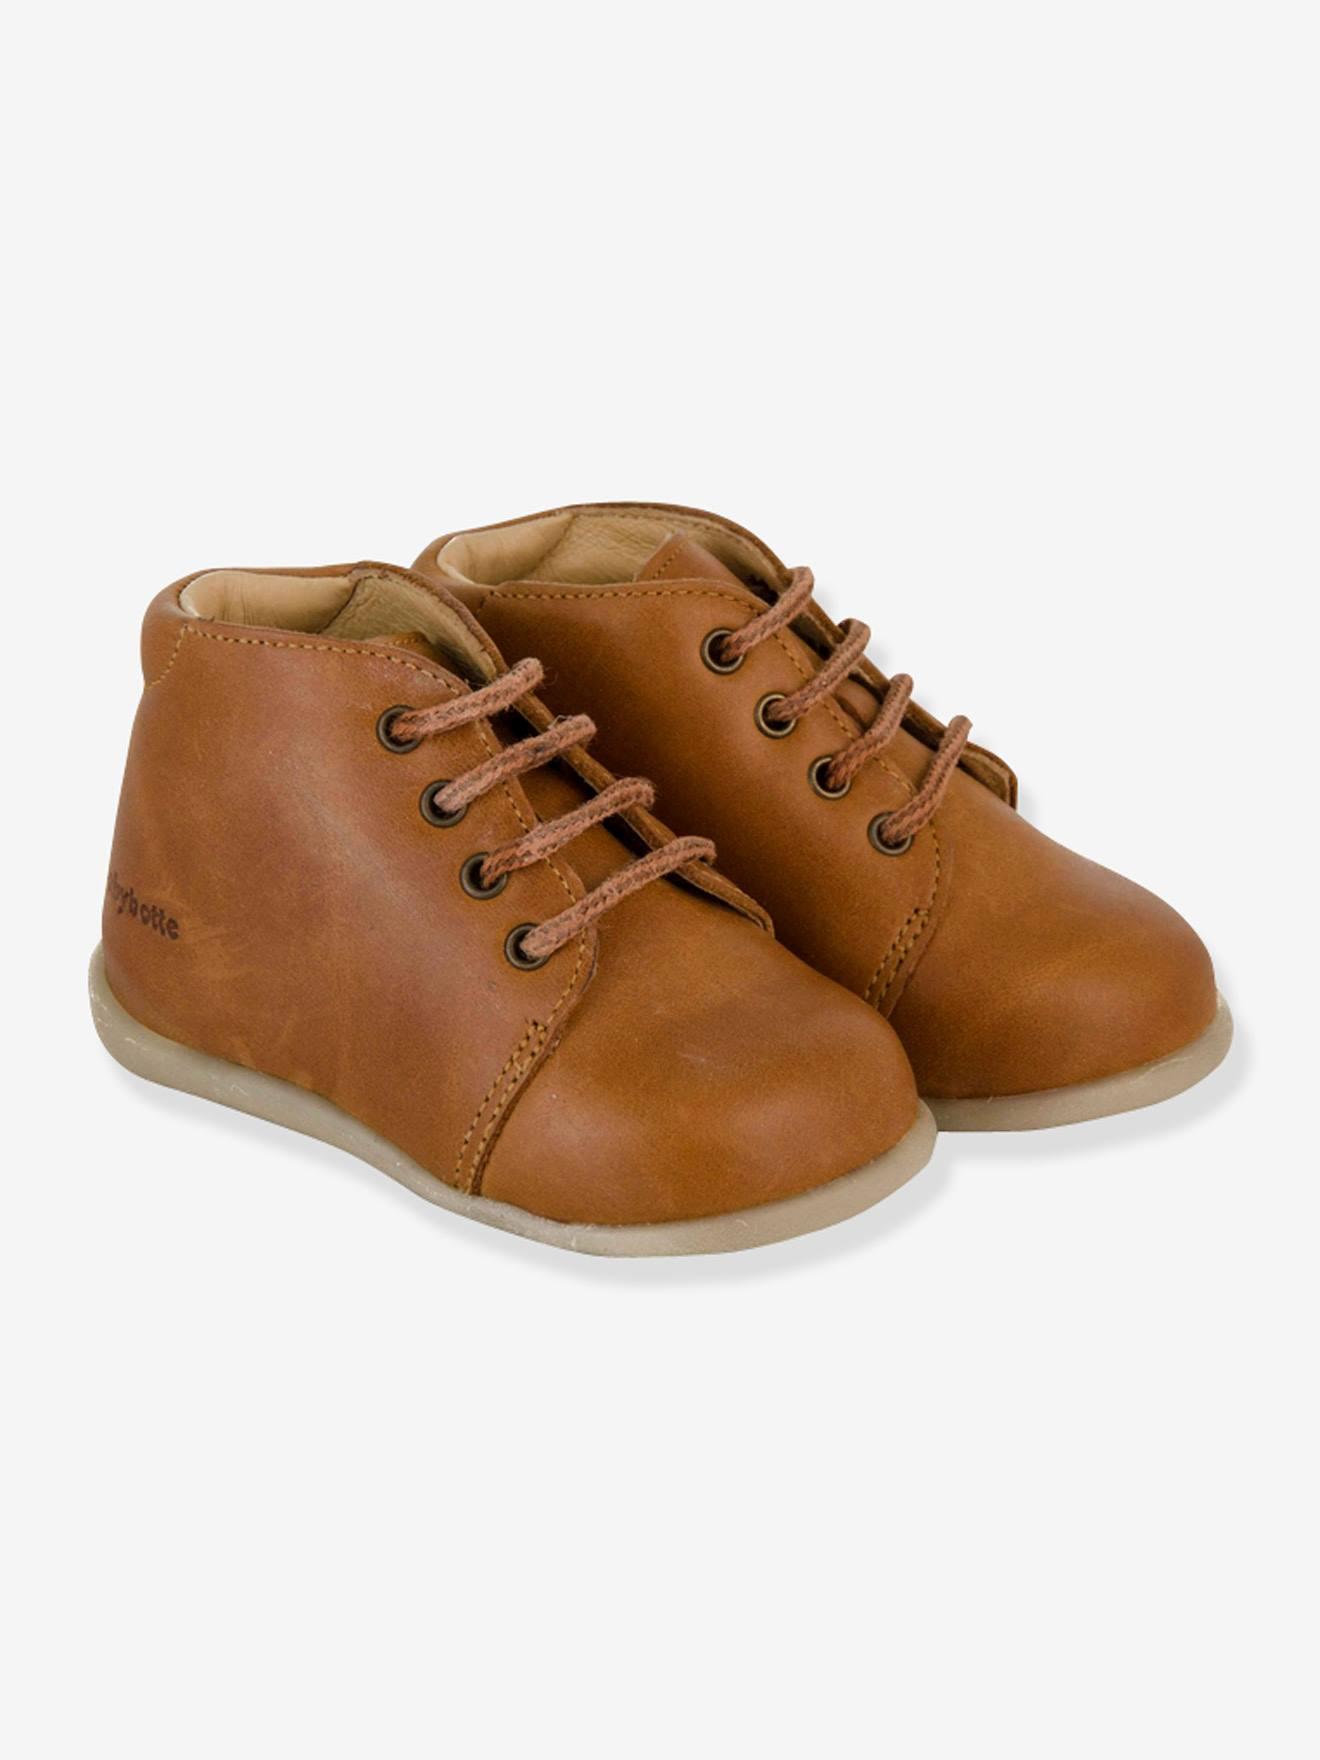 Leather Boots with Laces 6b01b7d39